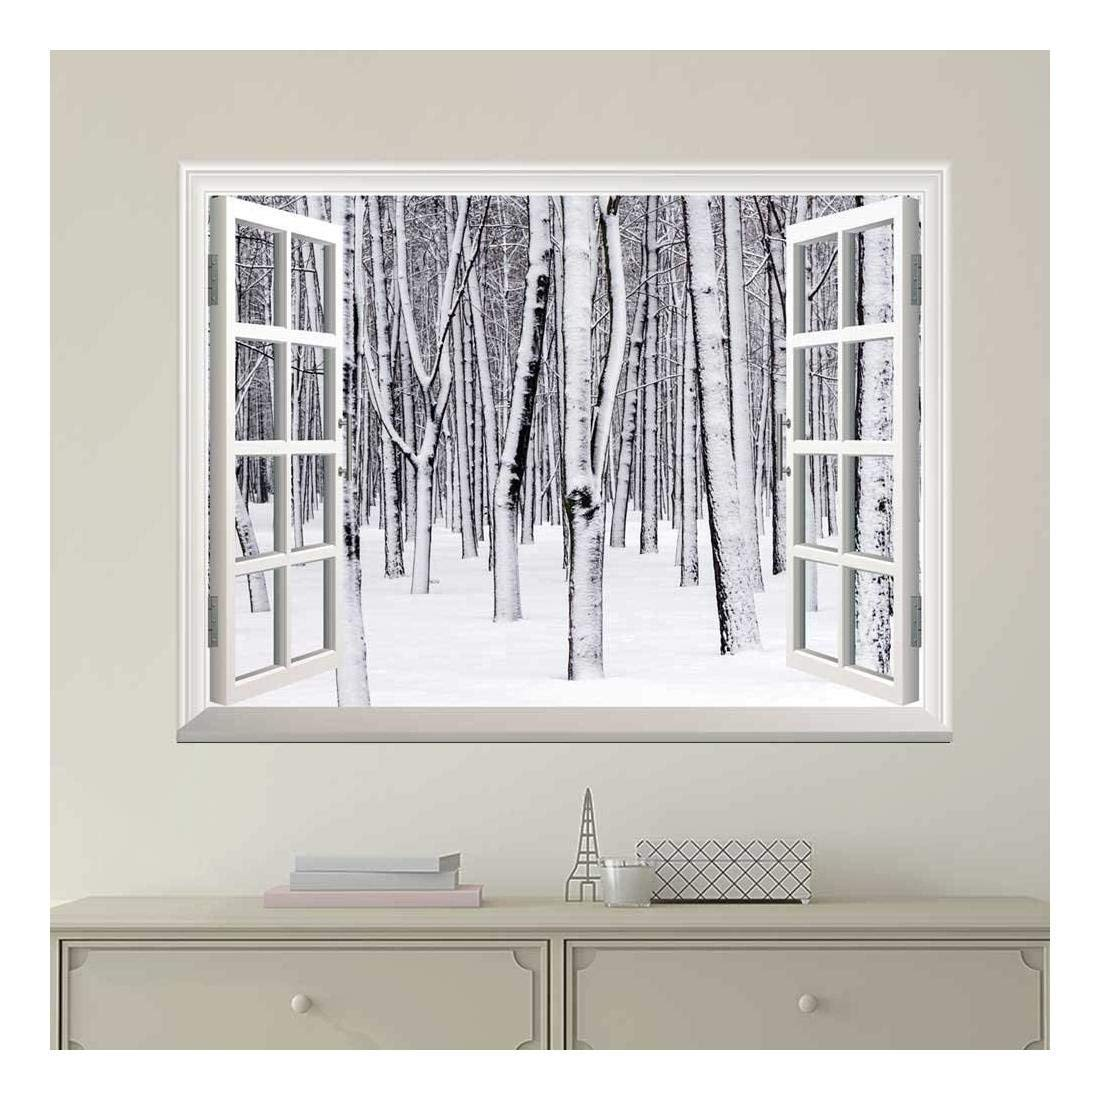 wall26 Modern White Window Looking Out Into a Snowed in Forest - Wall Mural, Removable Sticker, Home Decor - 24x32 inches